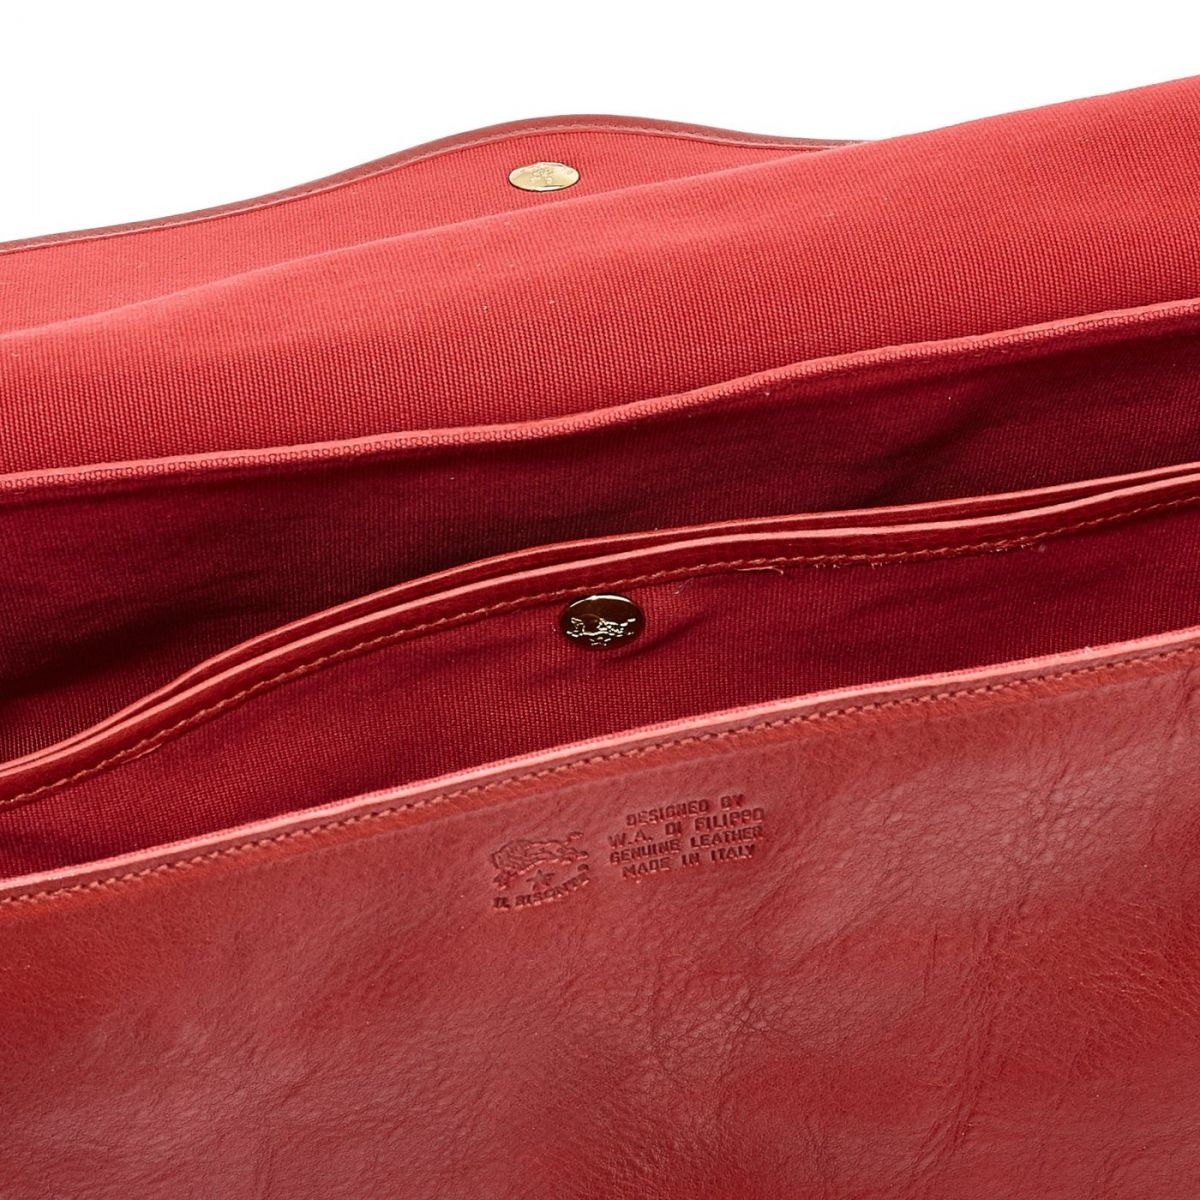 Women's Shoulder Bag in Cowhide Double Leather BSH034 color Red | Details